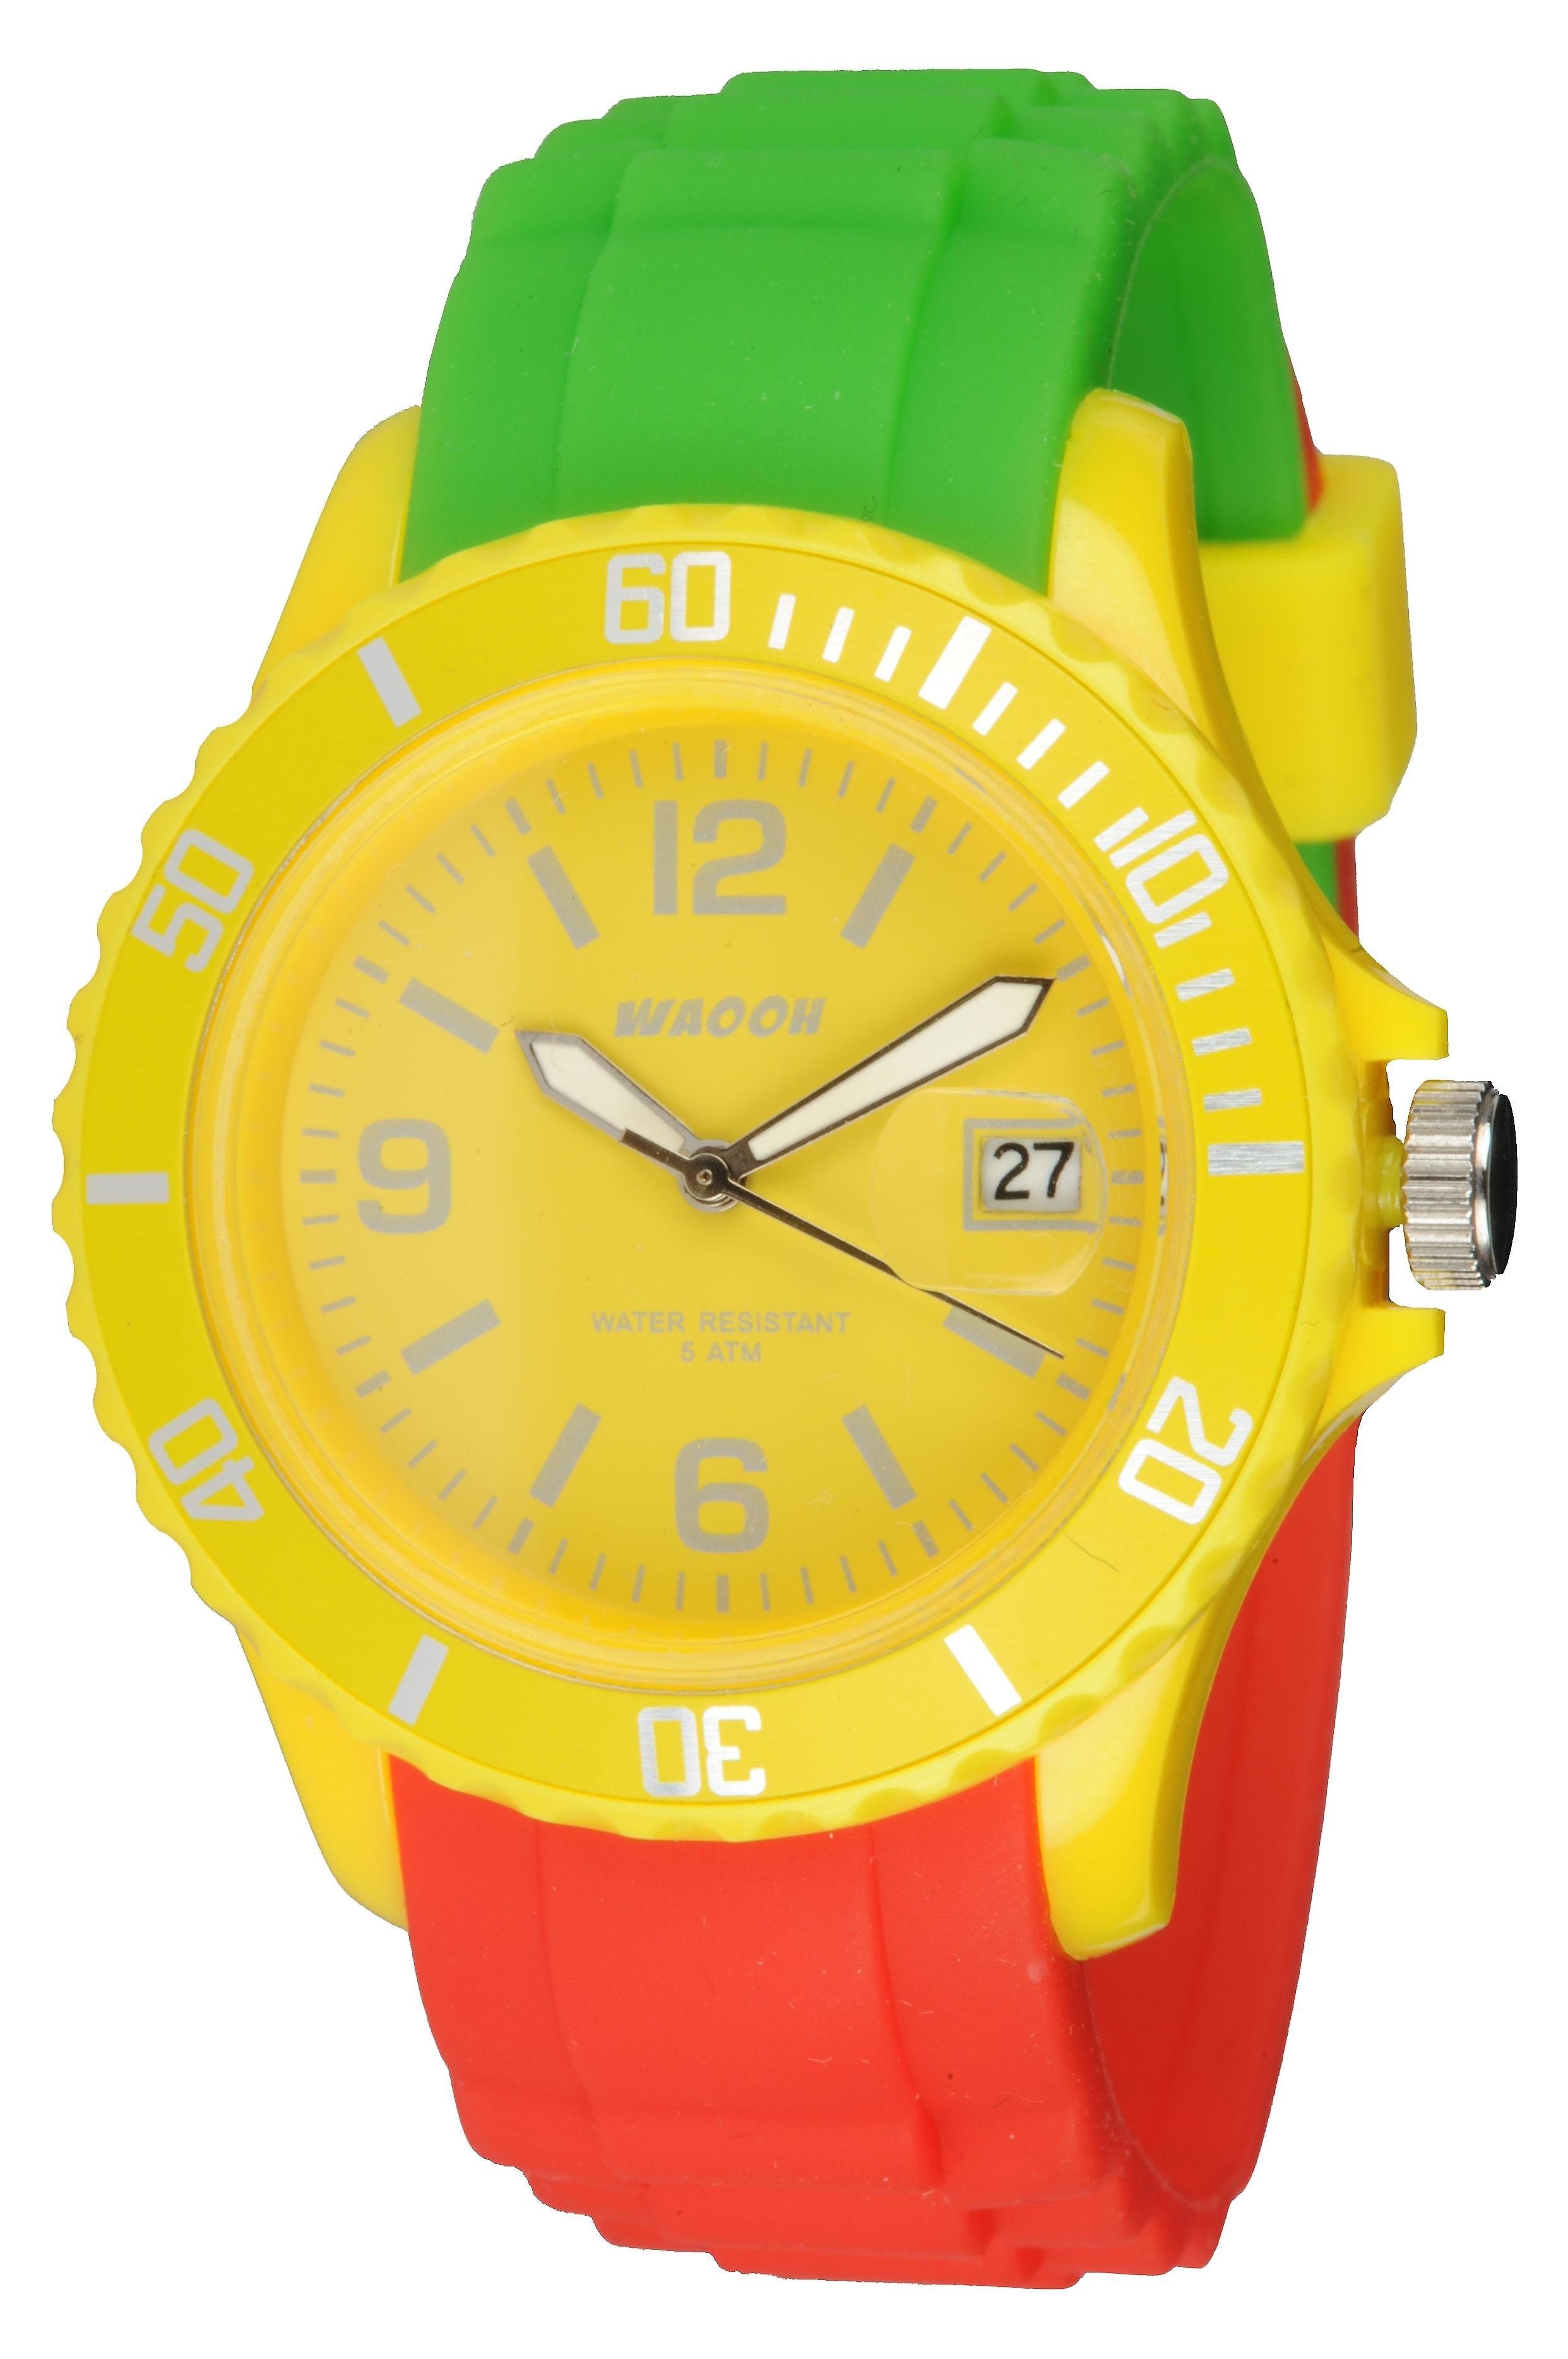 Waooh - Watch Rasta Monaco34